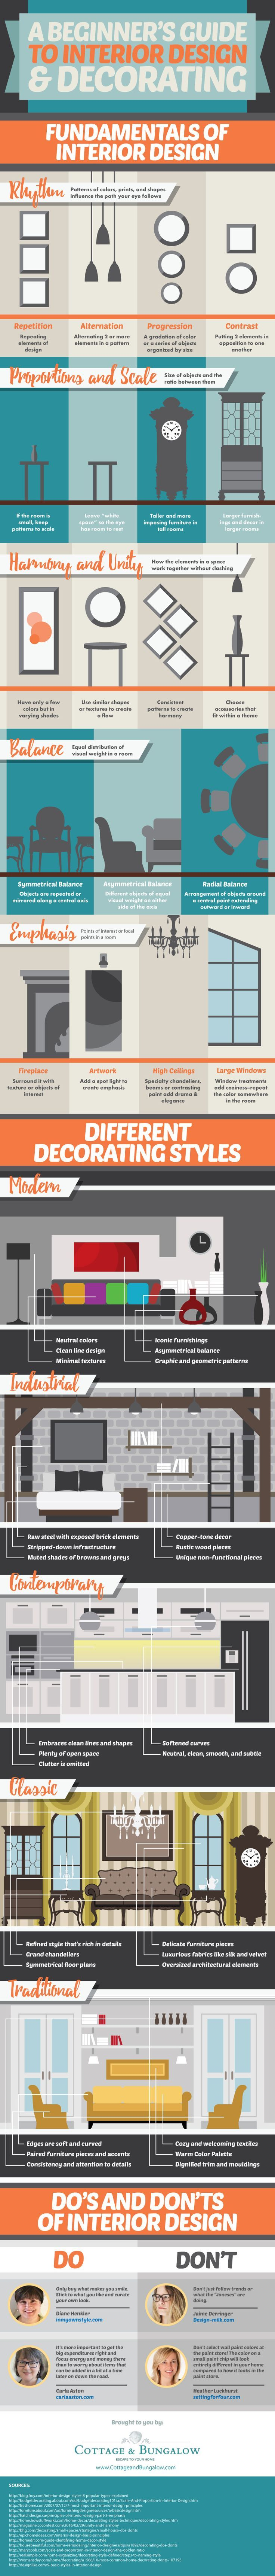 A Beginneru0027s Guide To Interior Design And Decorating #Infographic